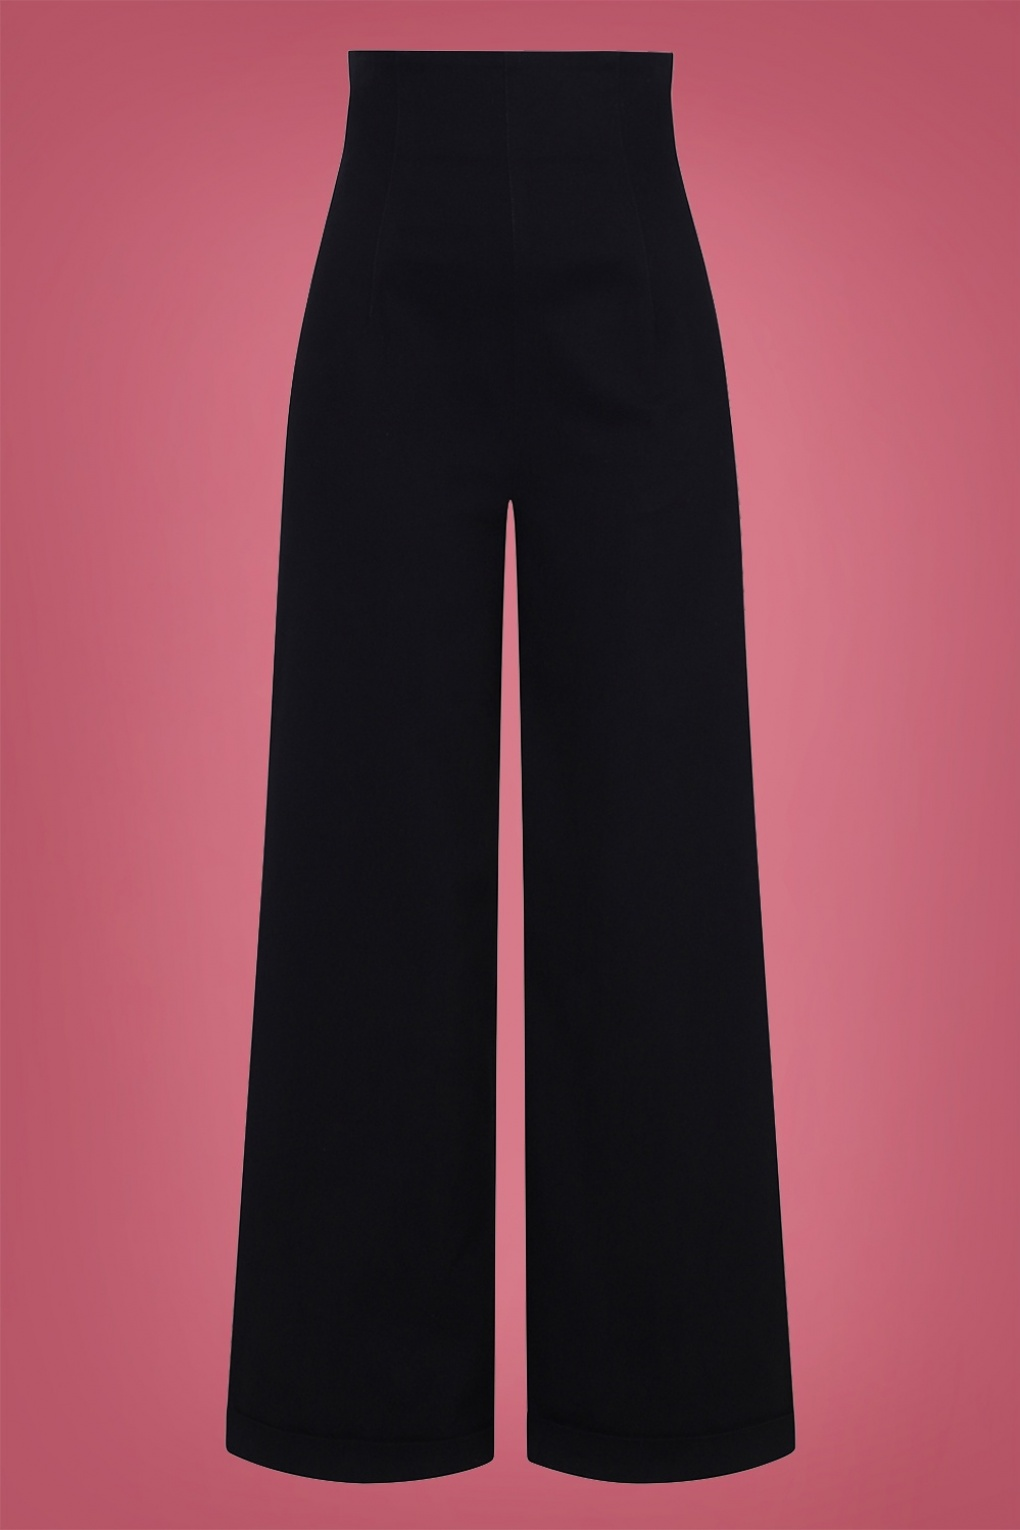 1950s Pants History for Women 50s Kiki High Waisted Jeans in Black £53.29 AT vintagedancer.com